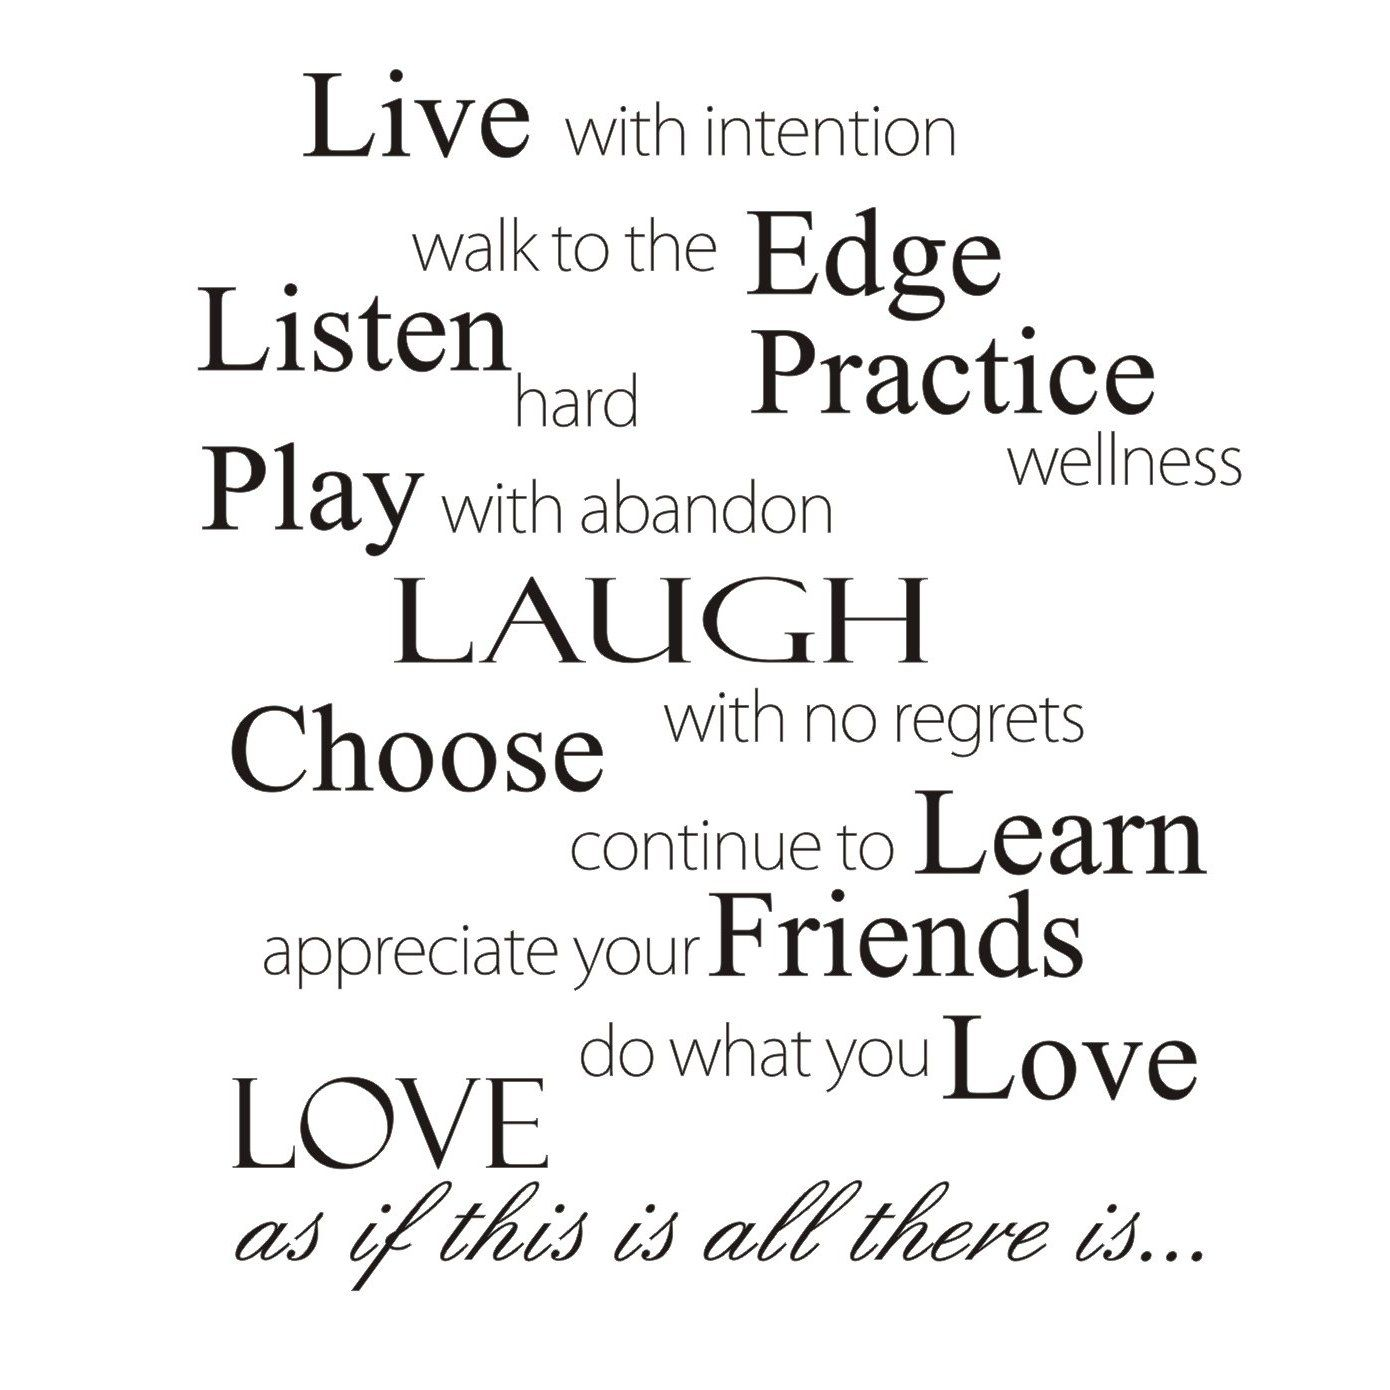 to the edge listen hard practice wellness play with abandon Laugh with no regrets choose continue to learn appreciate your friends do what you love